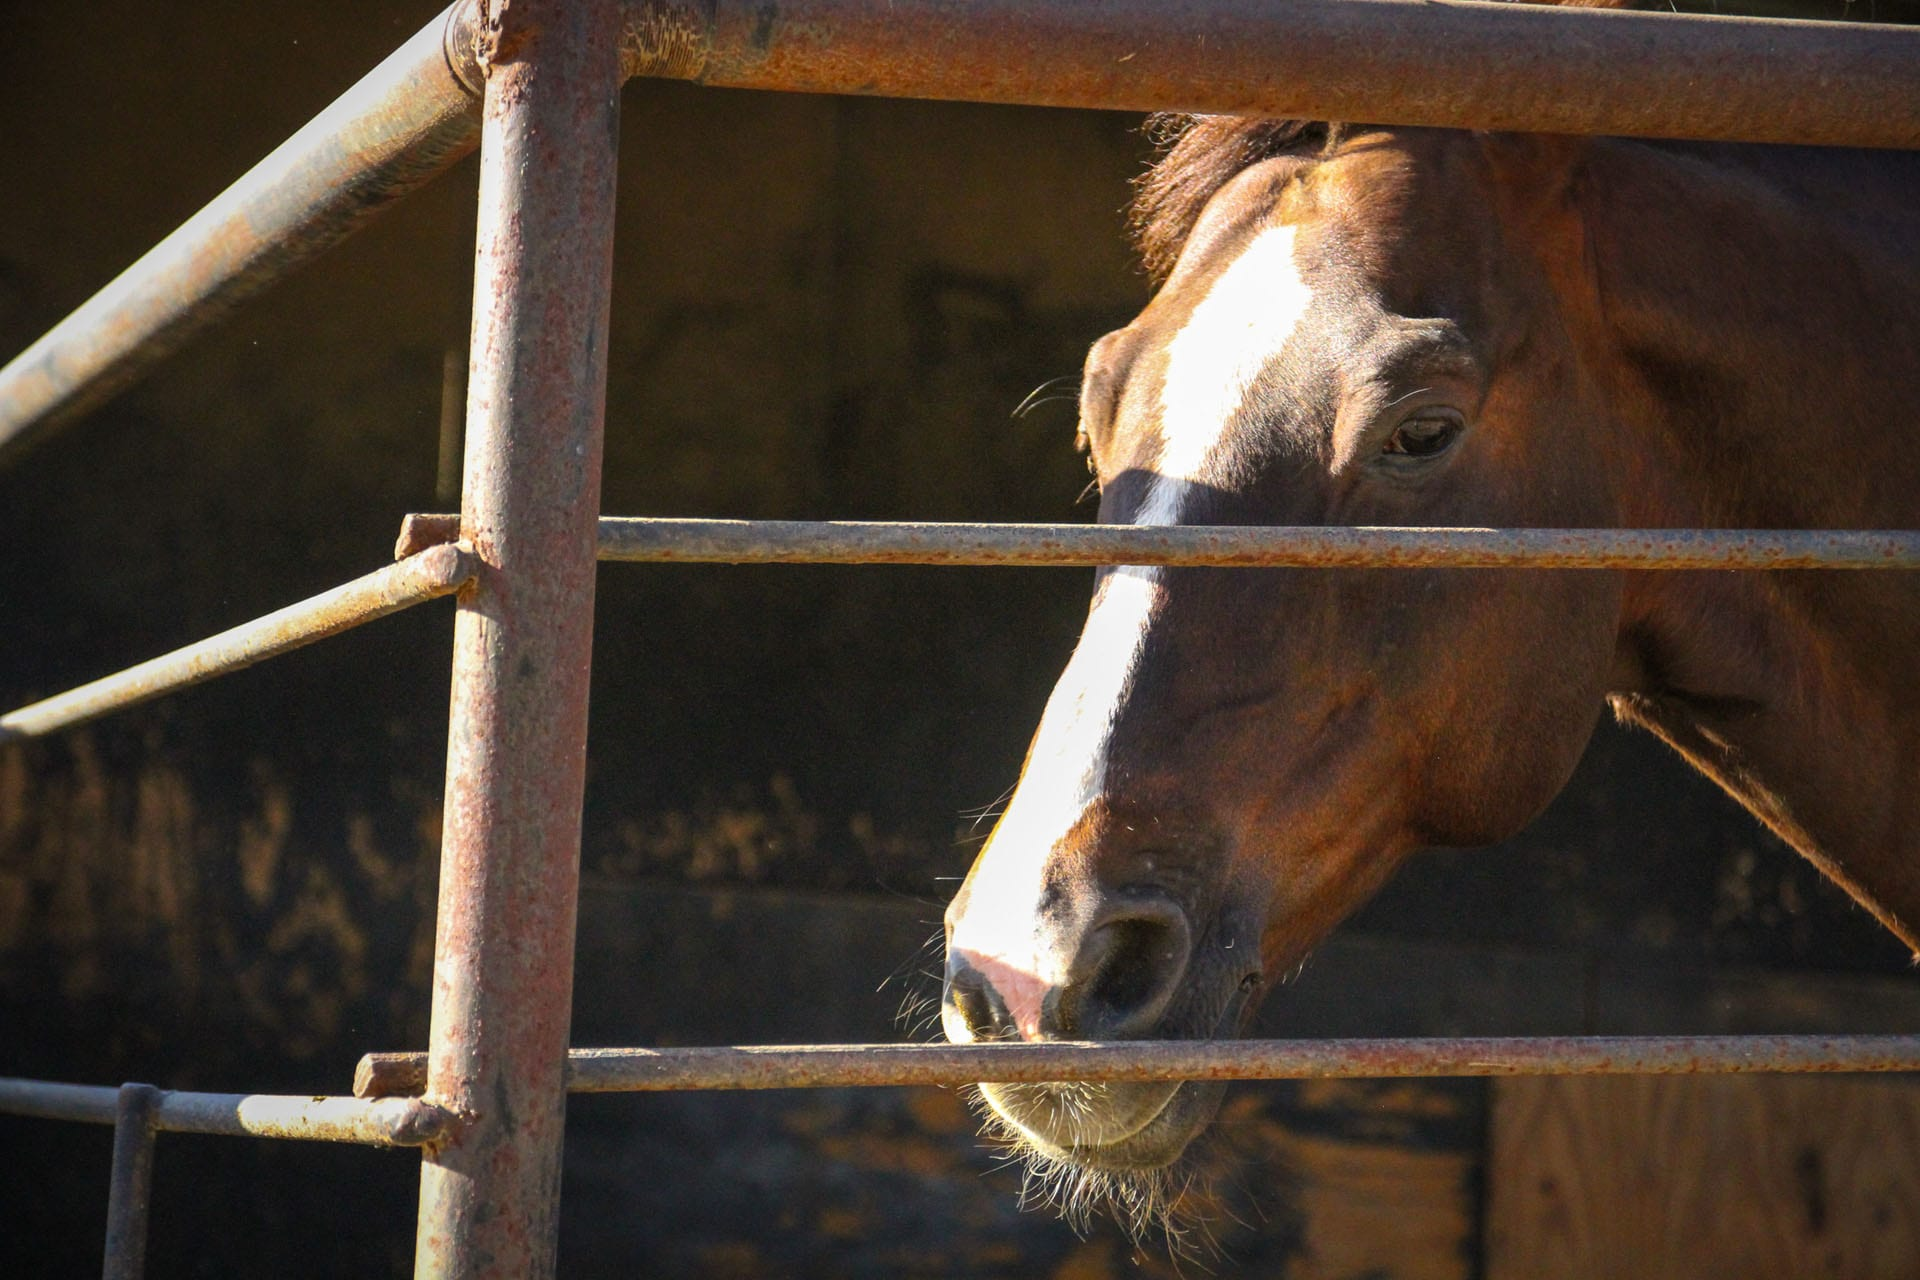 Face of a horse in a stall